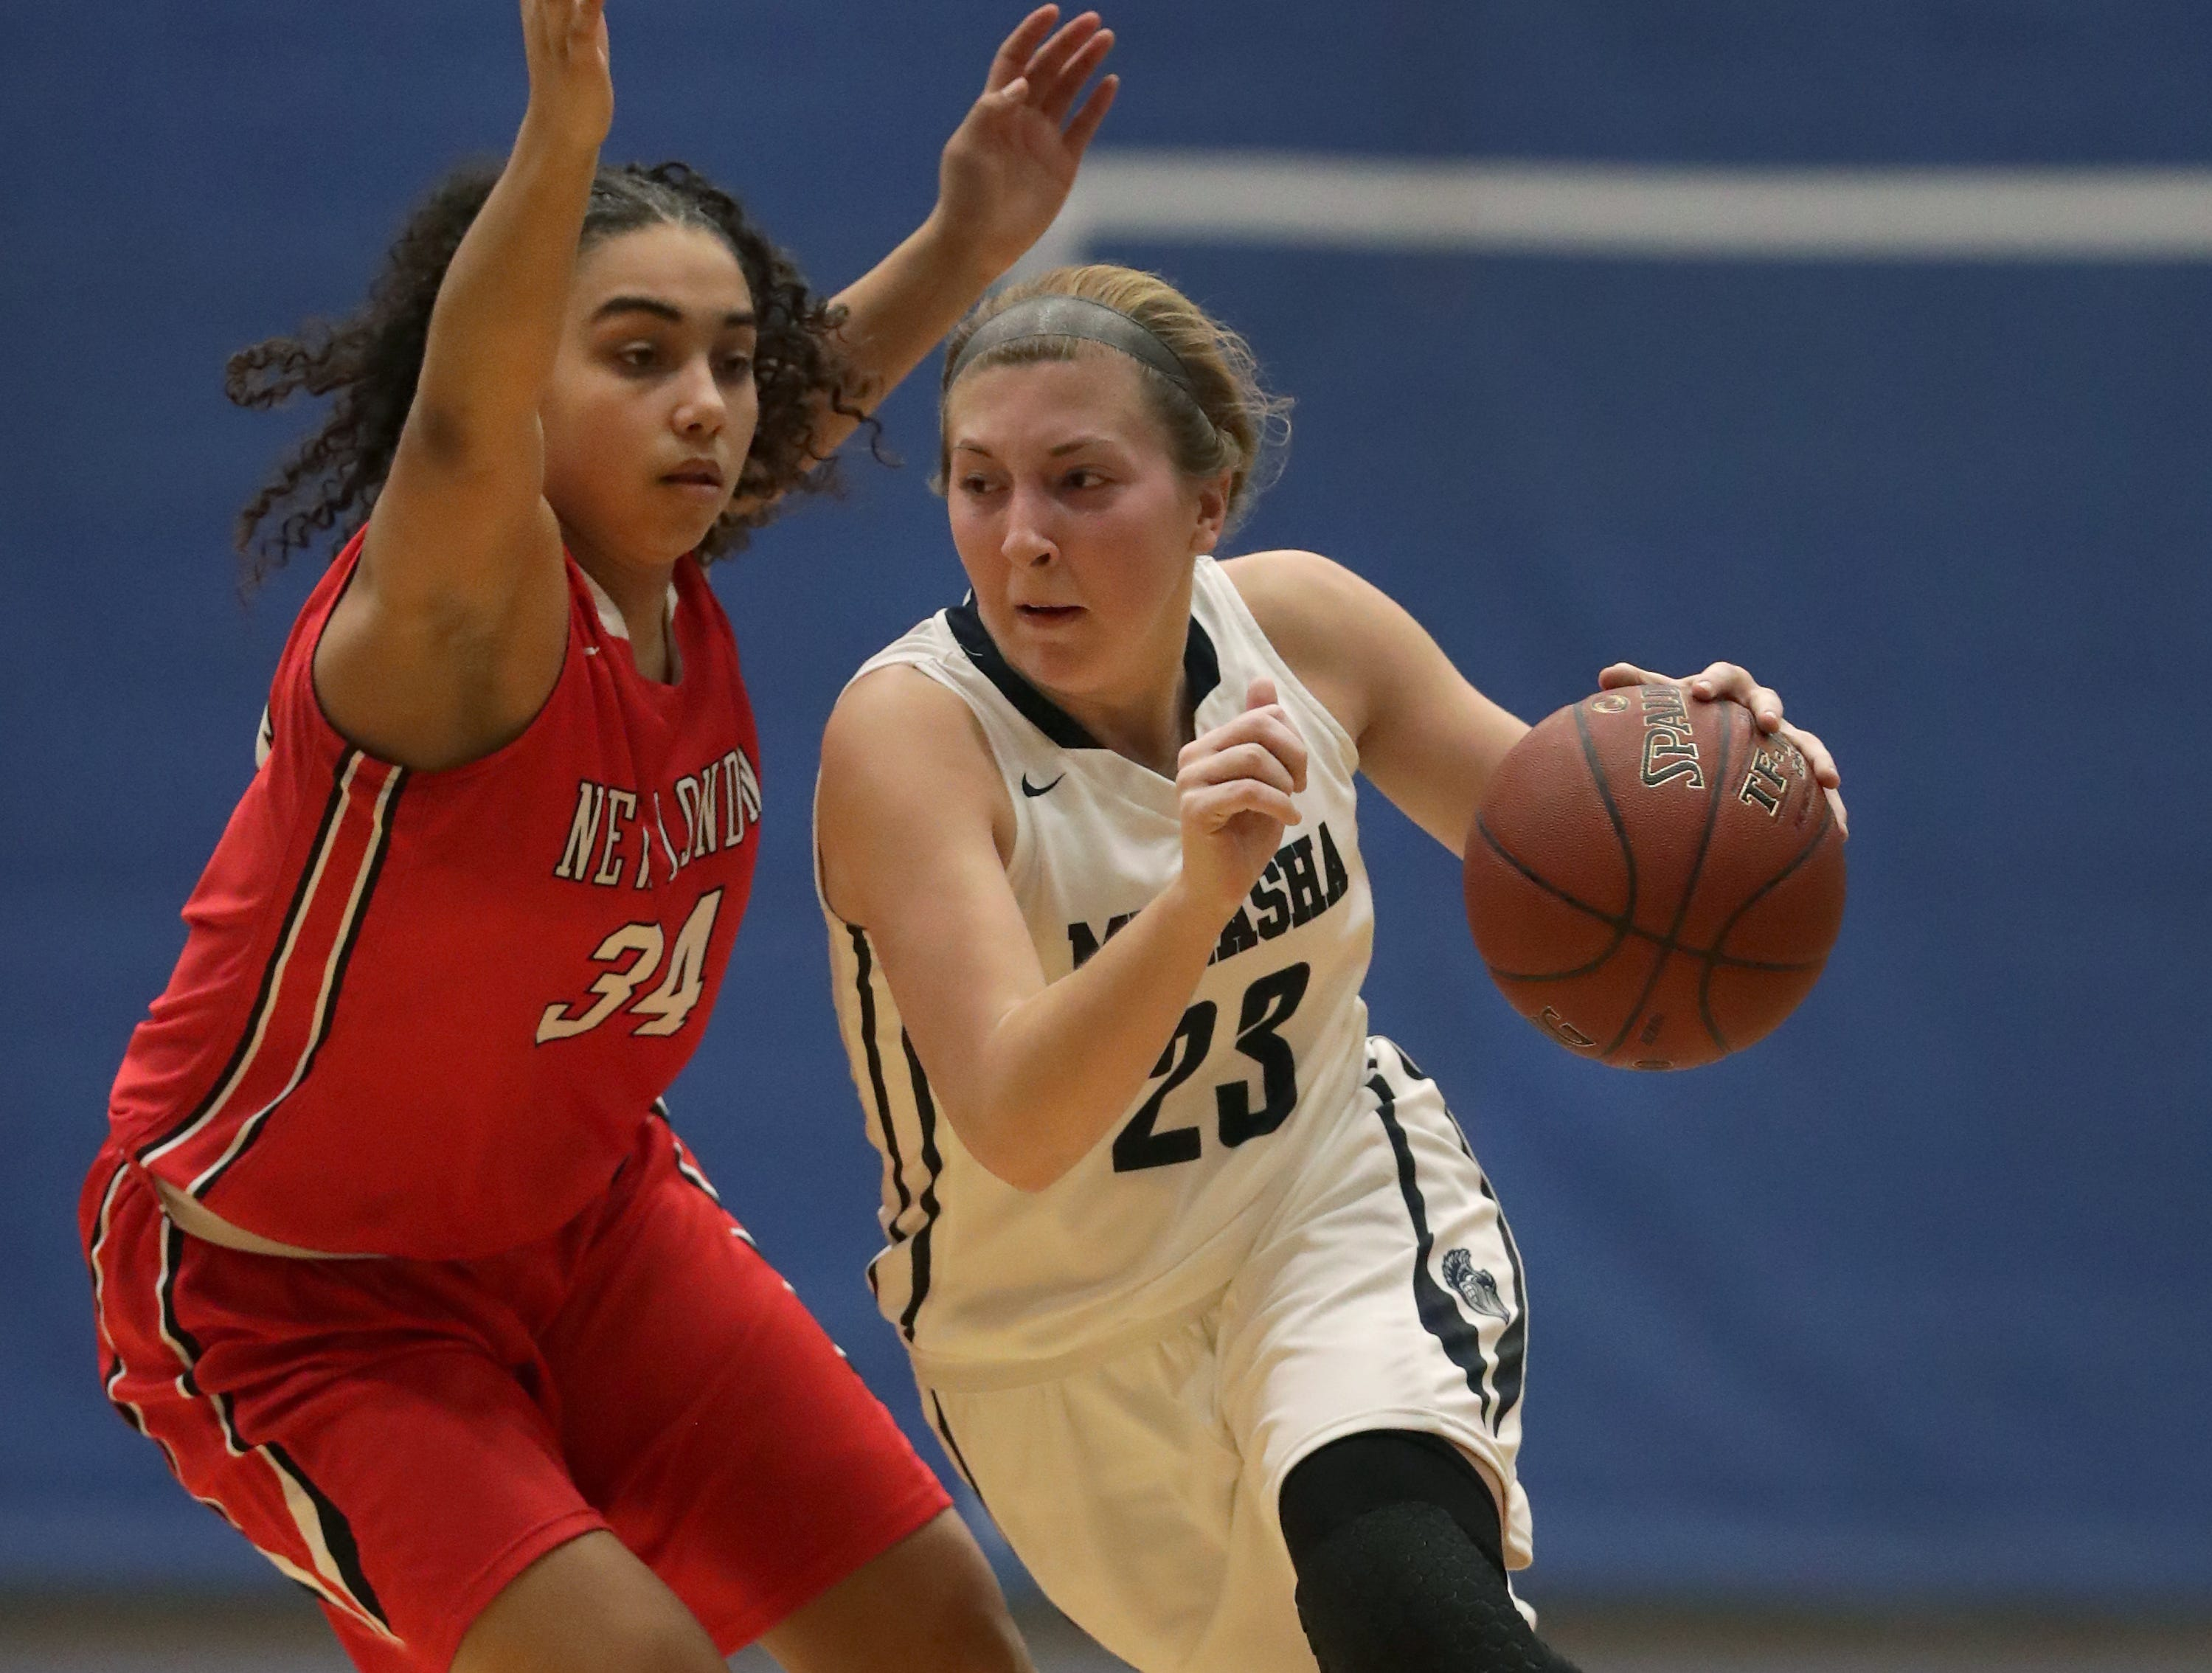 New London High School's #34 Mikayla Henderson against Menasha High School's #23 Alexa Yost during their girls basketball game on Friday, December 14, 2018, in Menasha, Wis.